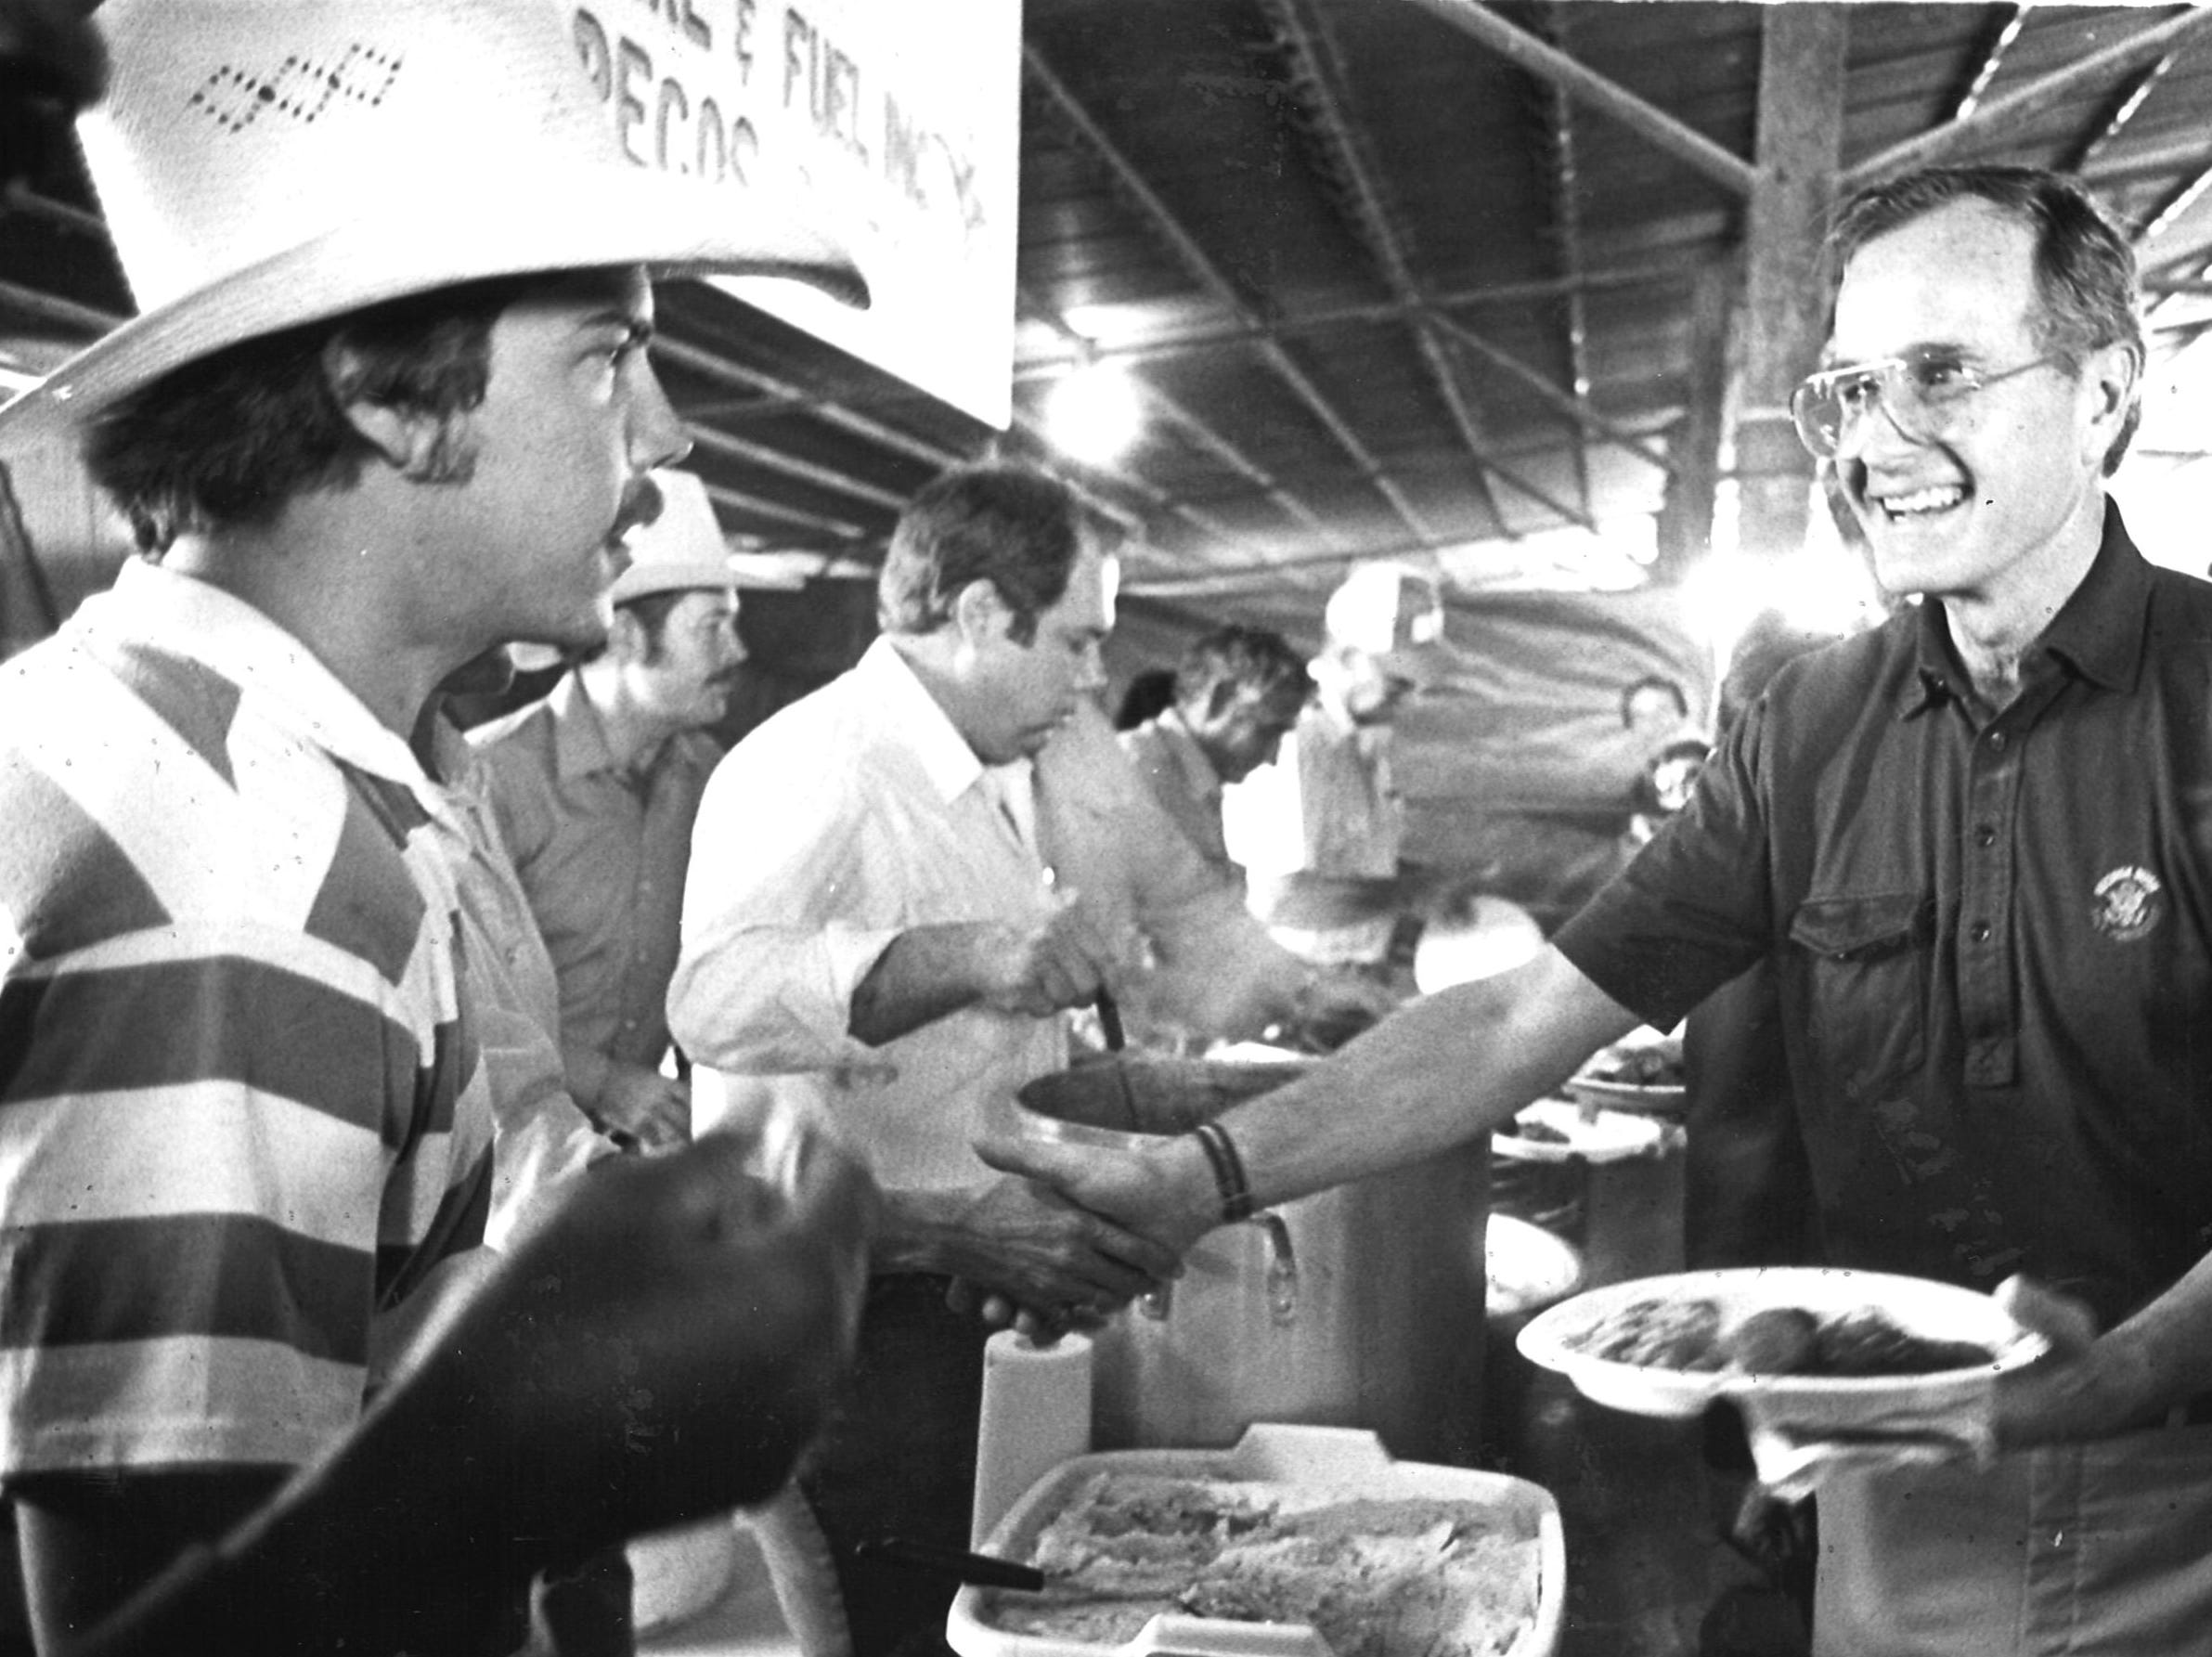 Vice President George Bush shakes hands with participants at a barbecue on Oct. 16, 1982 in Pecos.